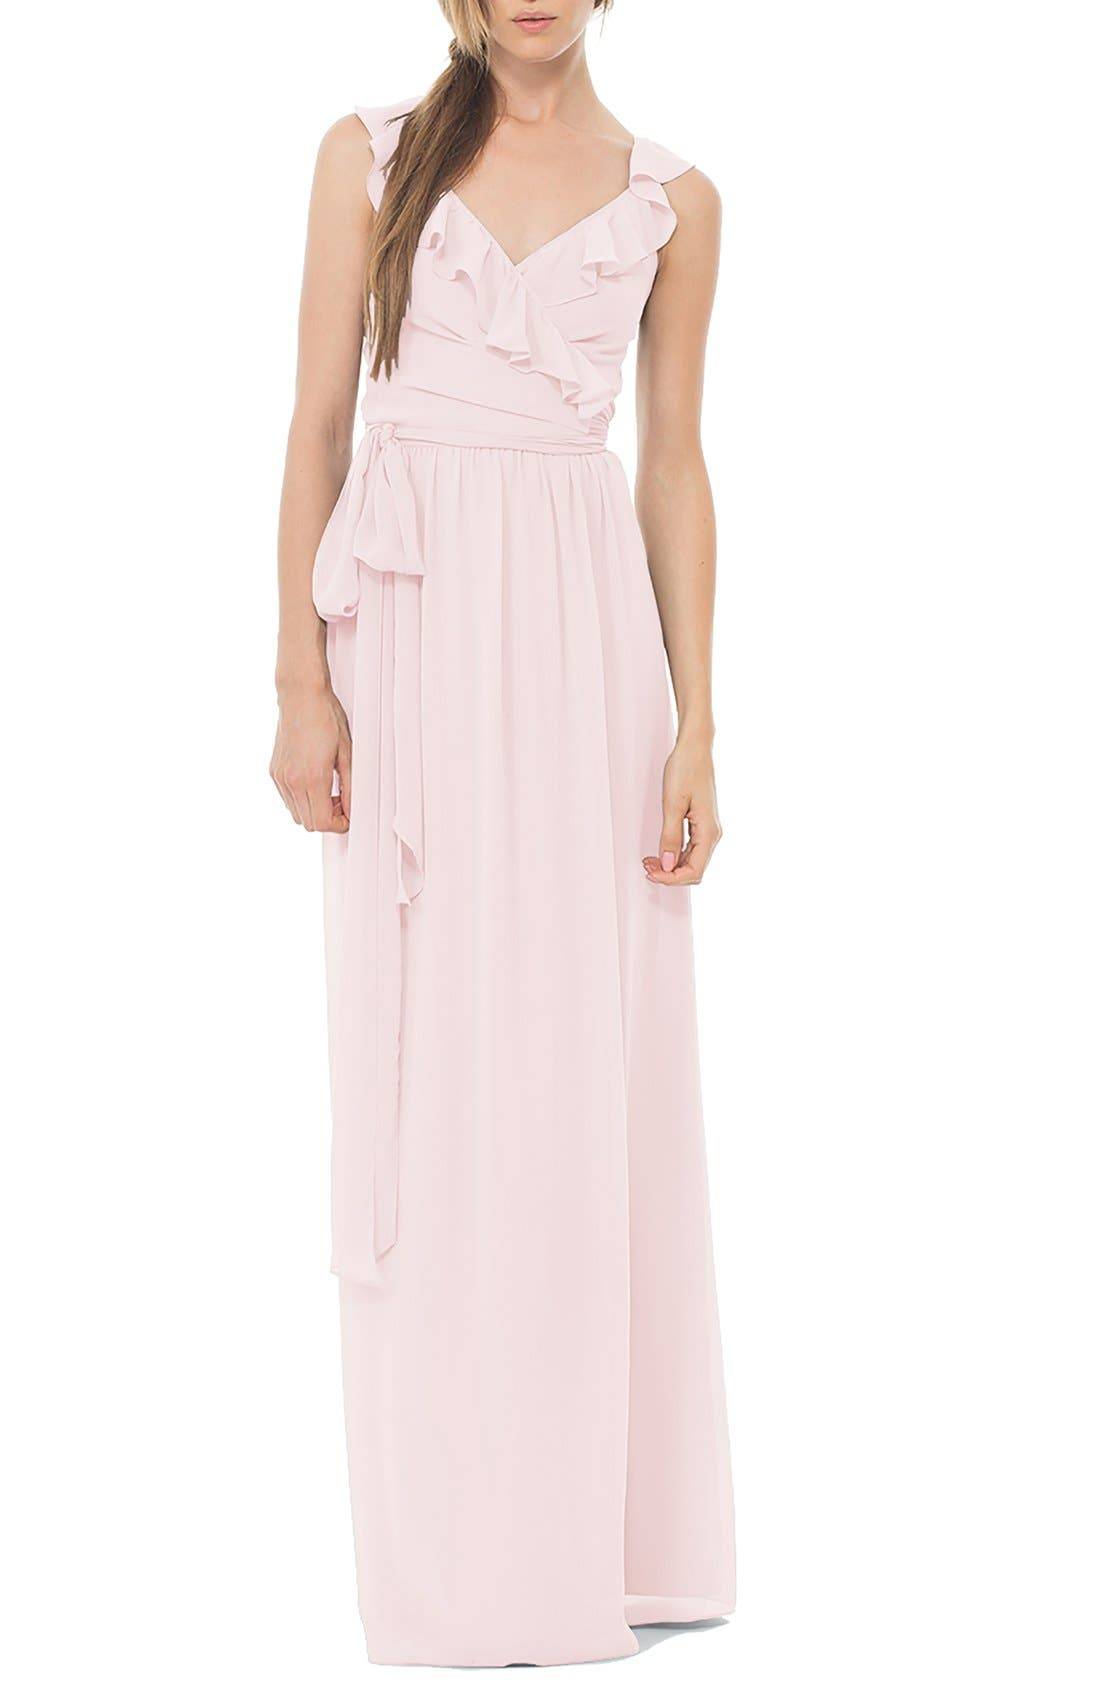 Ceremony by Joanna August 'Lacey' Ruffle Wrap Chiffon Gown